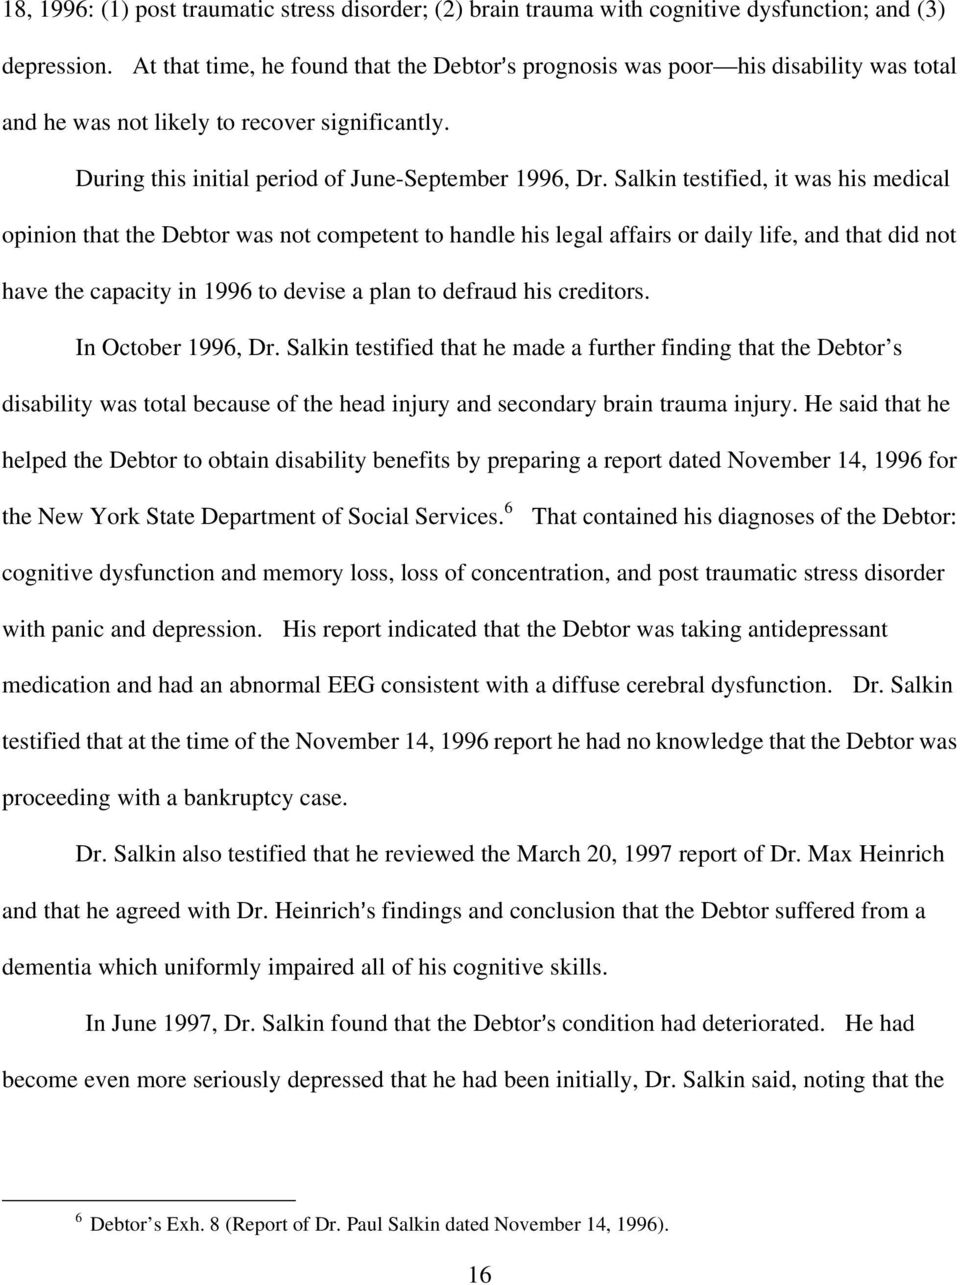 Salkin testified, it was his medical opinion that the Debtor was not competent to handle his legal affairs or daily life, and that did not have the capacity in 1996 to devise a plan to defraud his